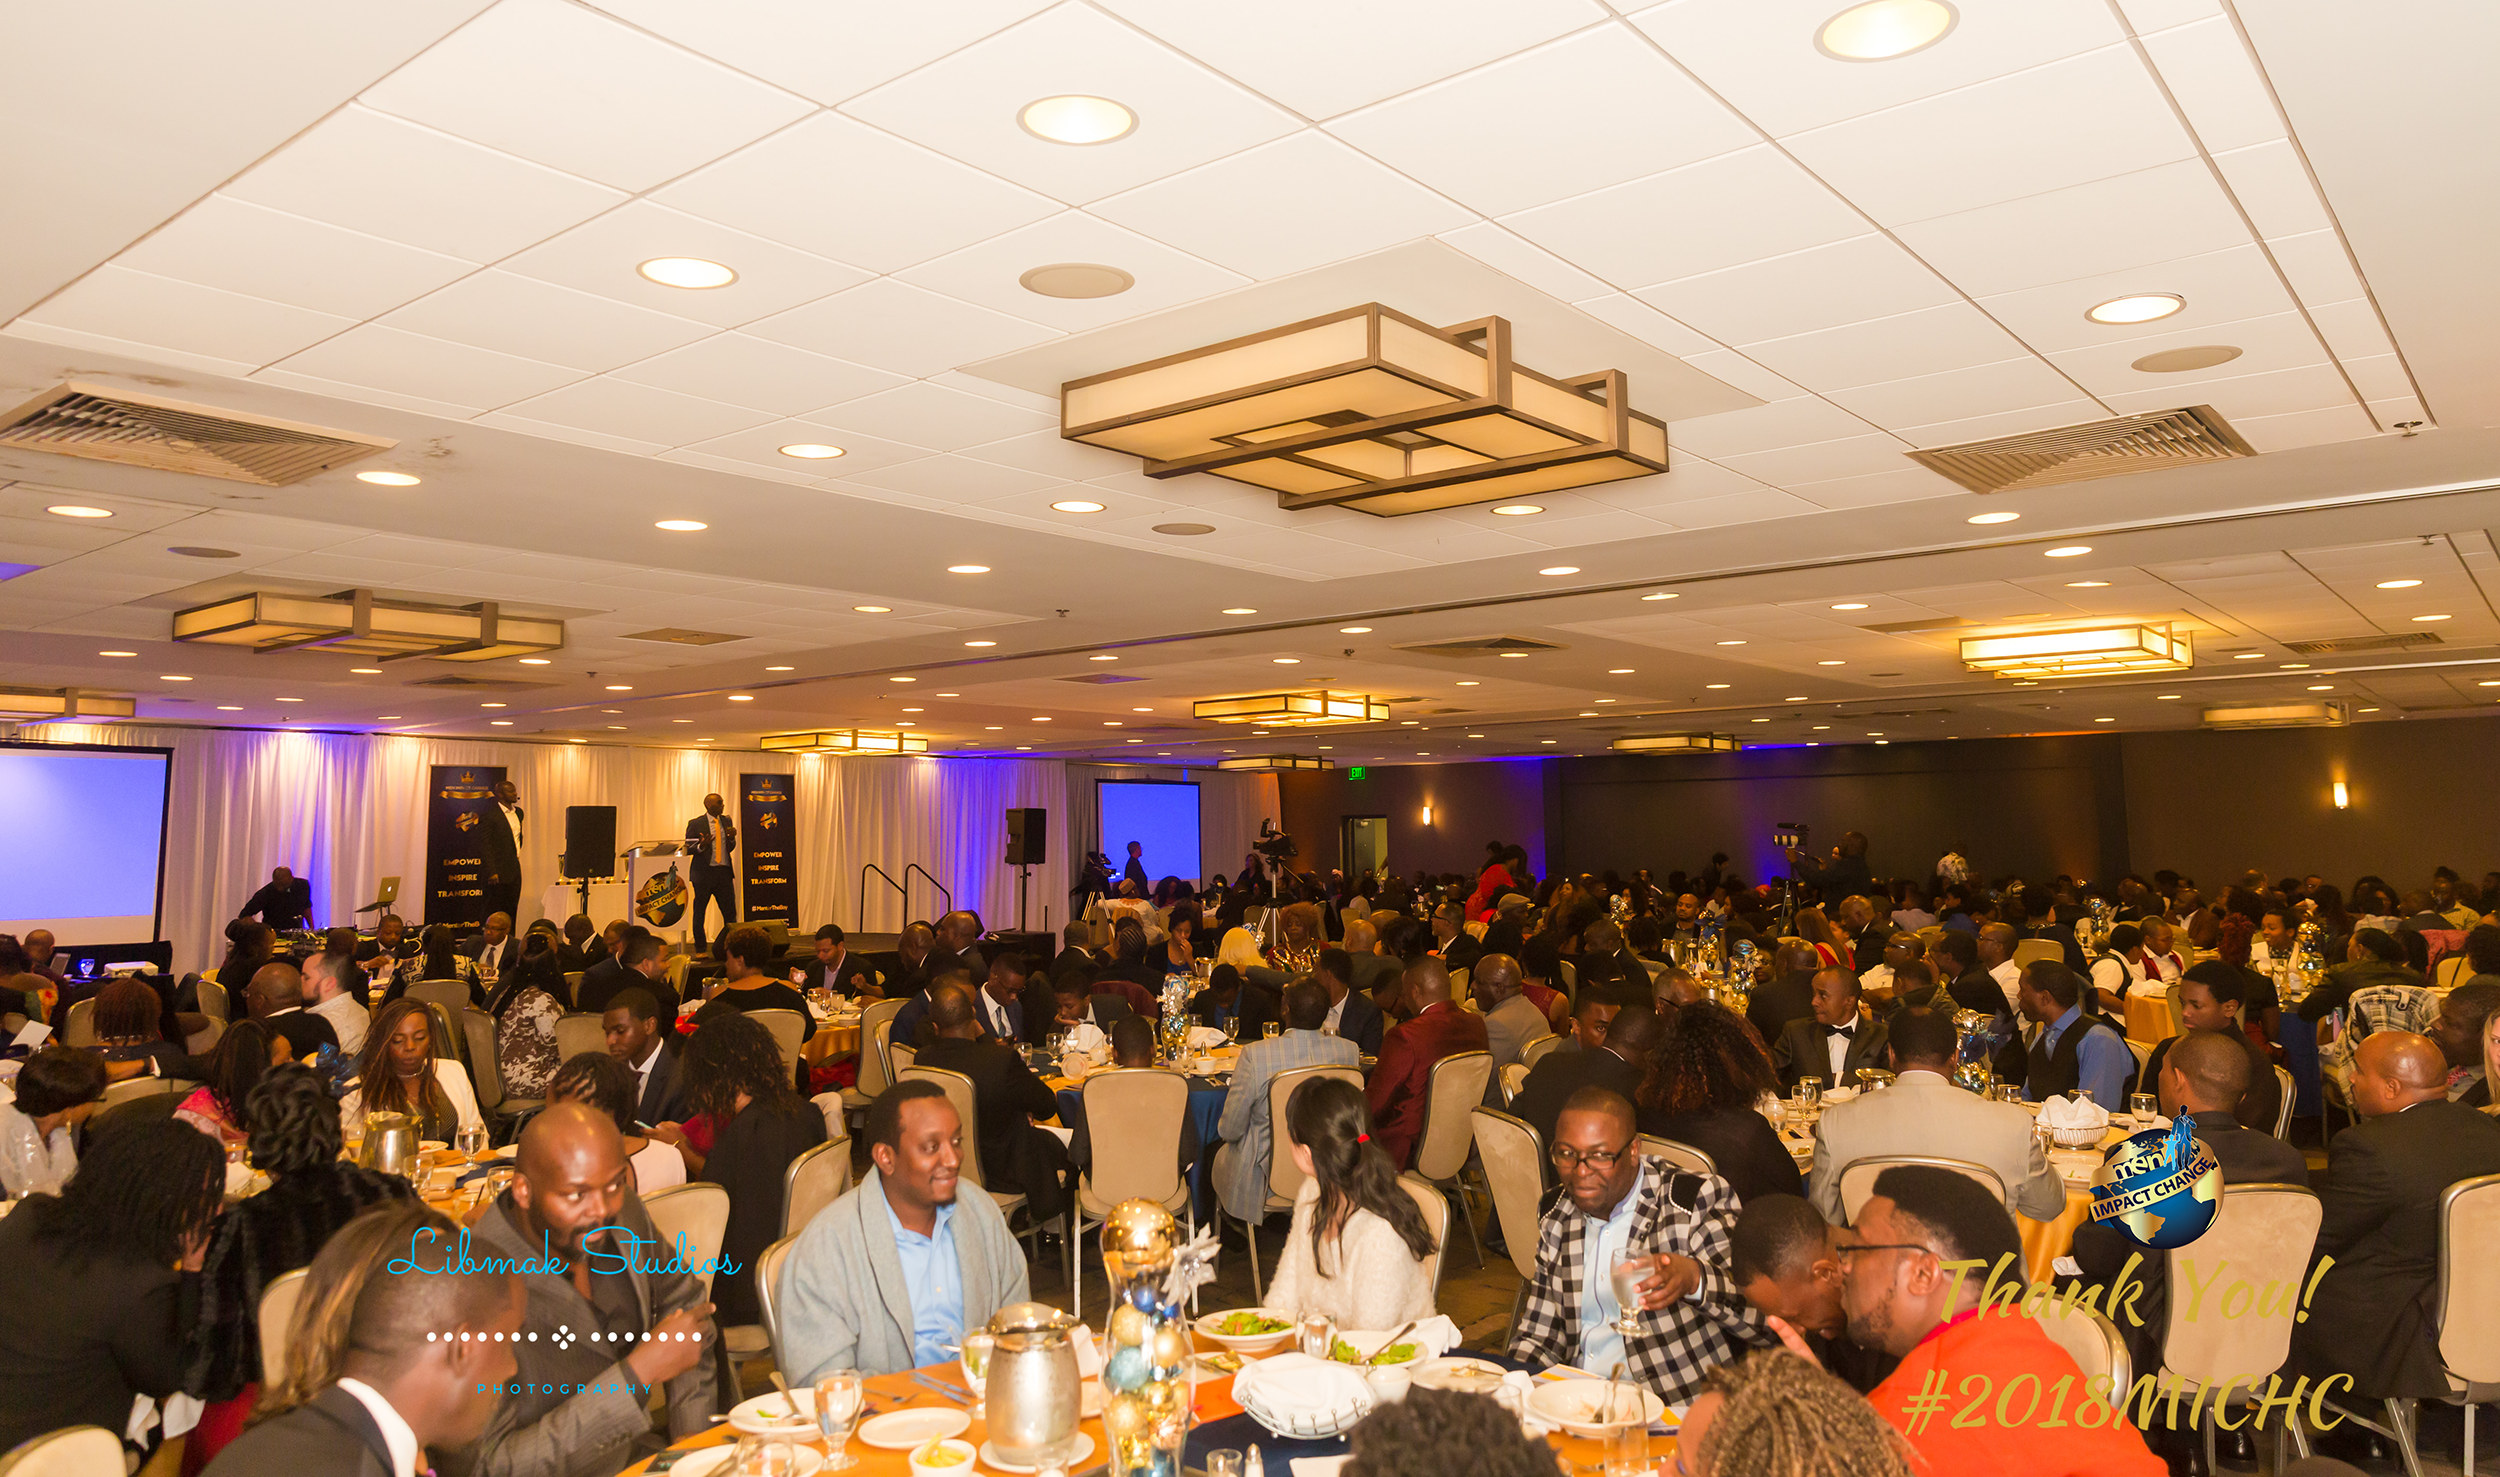 Over 350 attended last year!